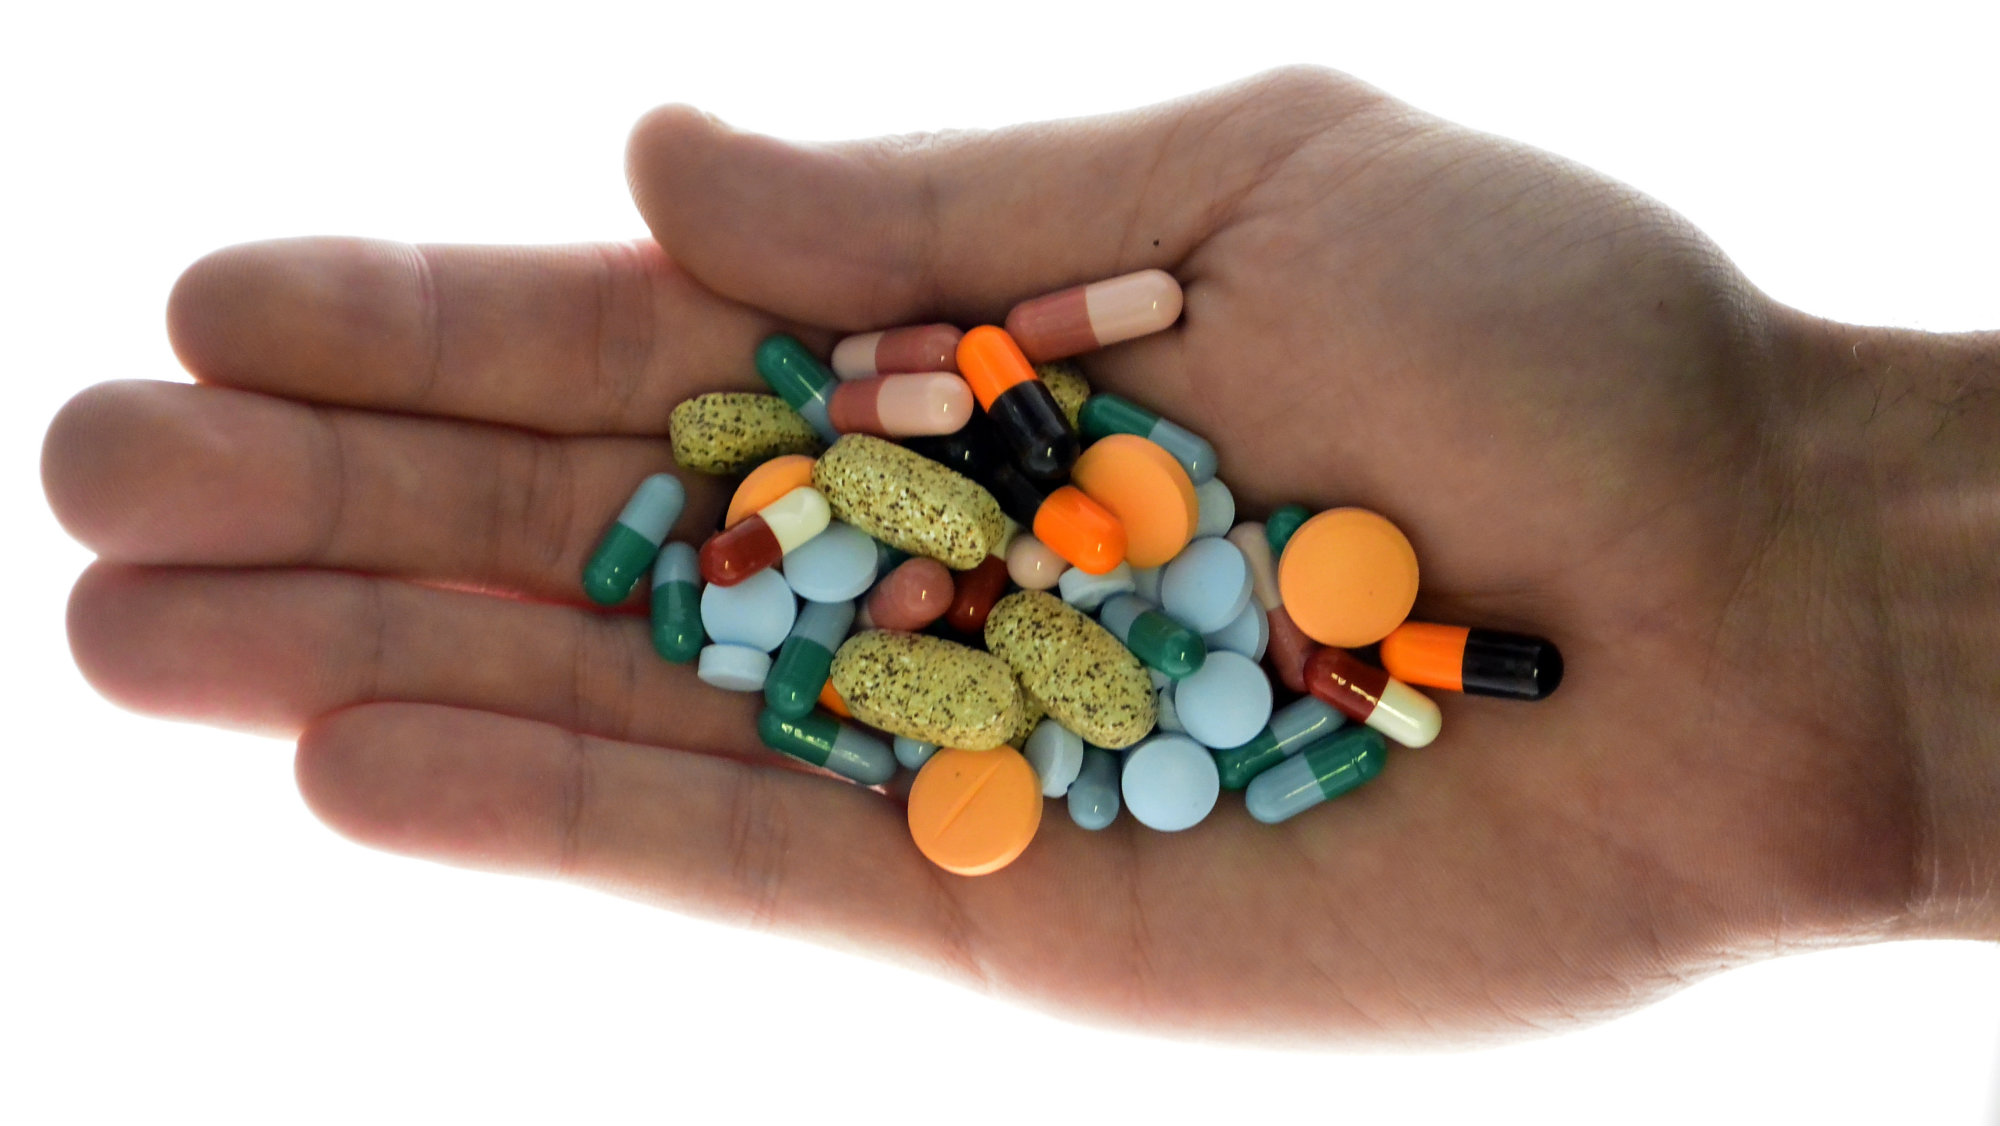 A person holds pharmaceutical tablets and capsules